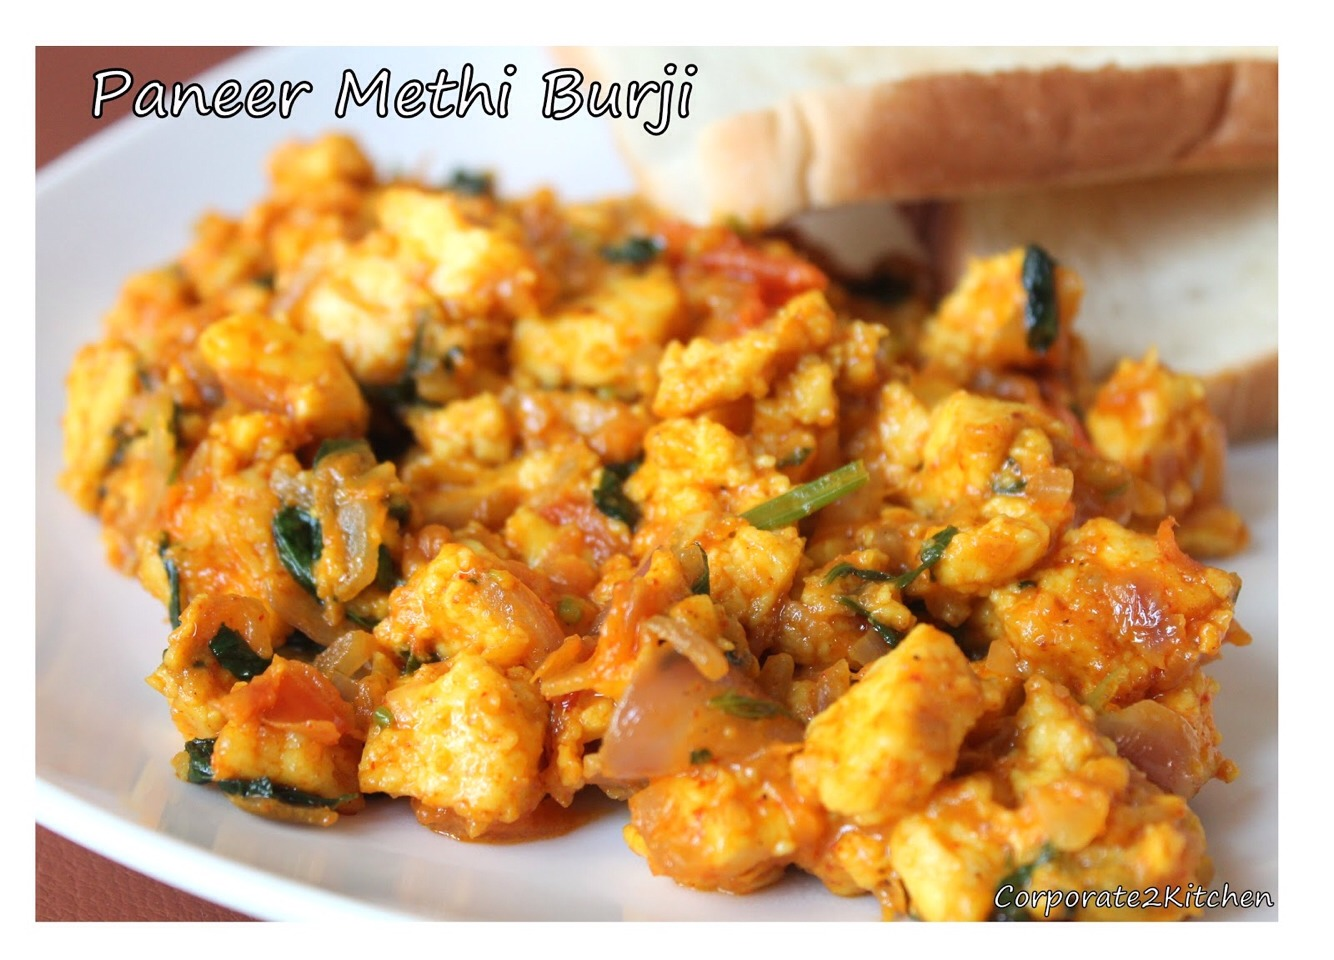 Egg burji or Anda burji is a very common and liked dish made with egg. Eggs scrambled and spiced to perfection. Goes well with anything or sandwich between 2 breads.